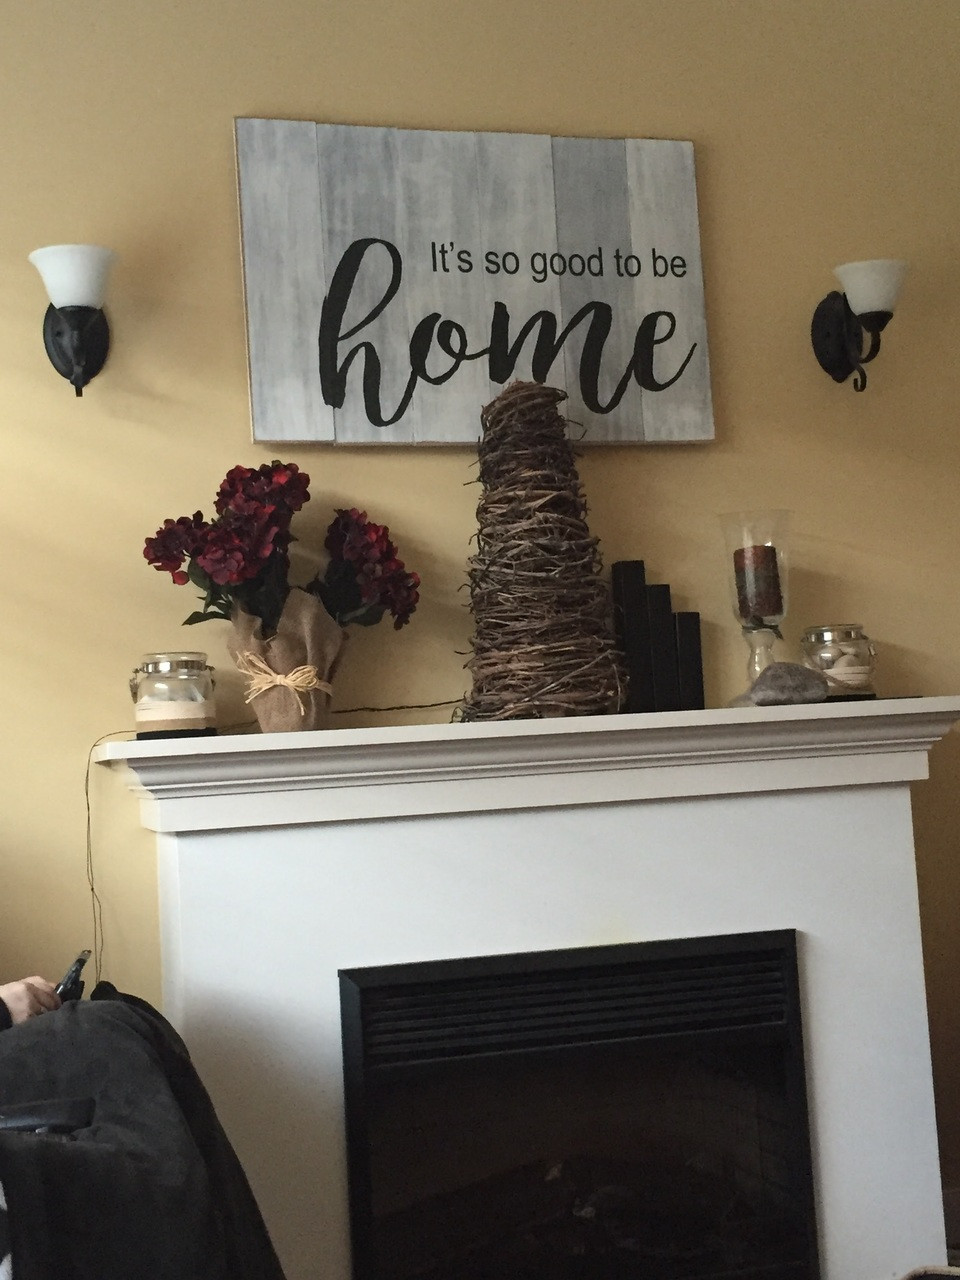 It's so good to be home wood sign